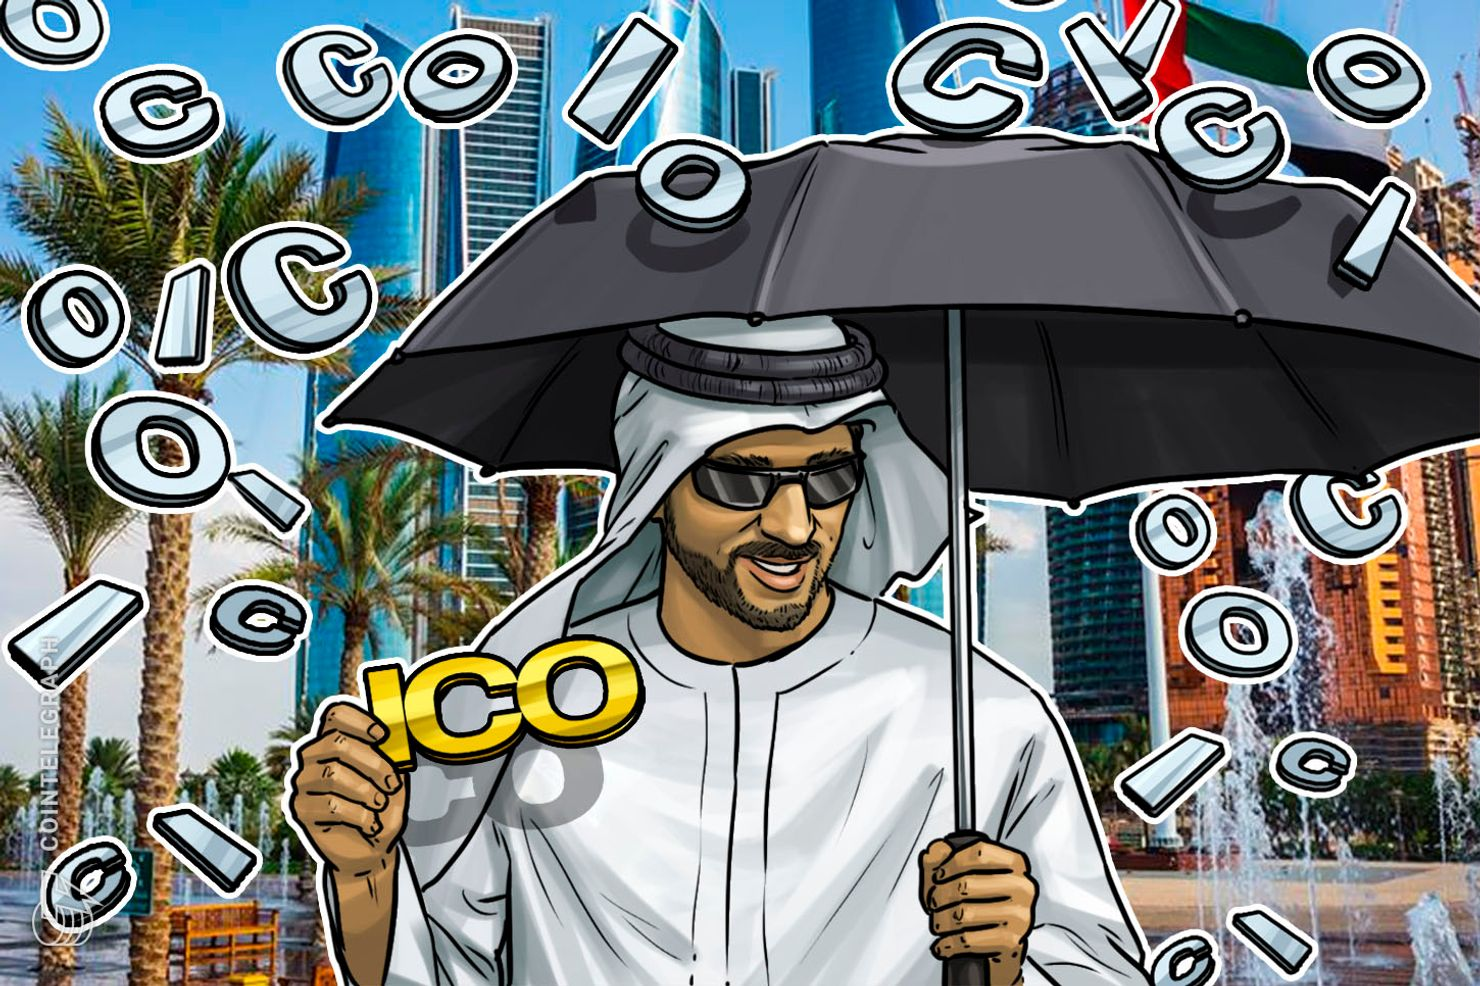 Unconfirmed: UAE Preparing to Adopt Formal ICO, Fintech Regulations, Local Media Report